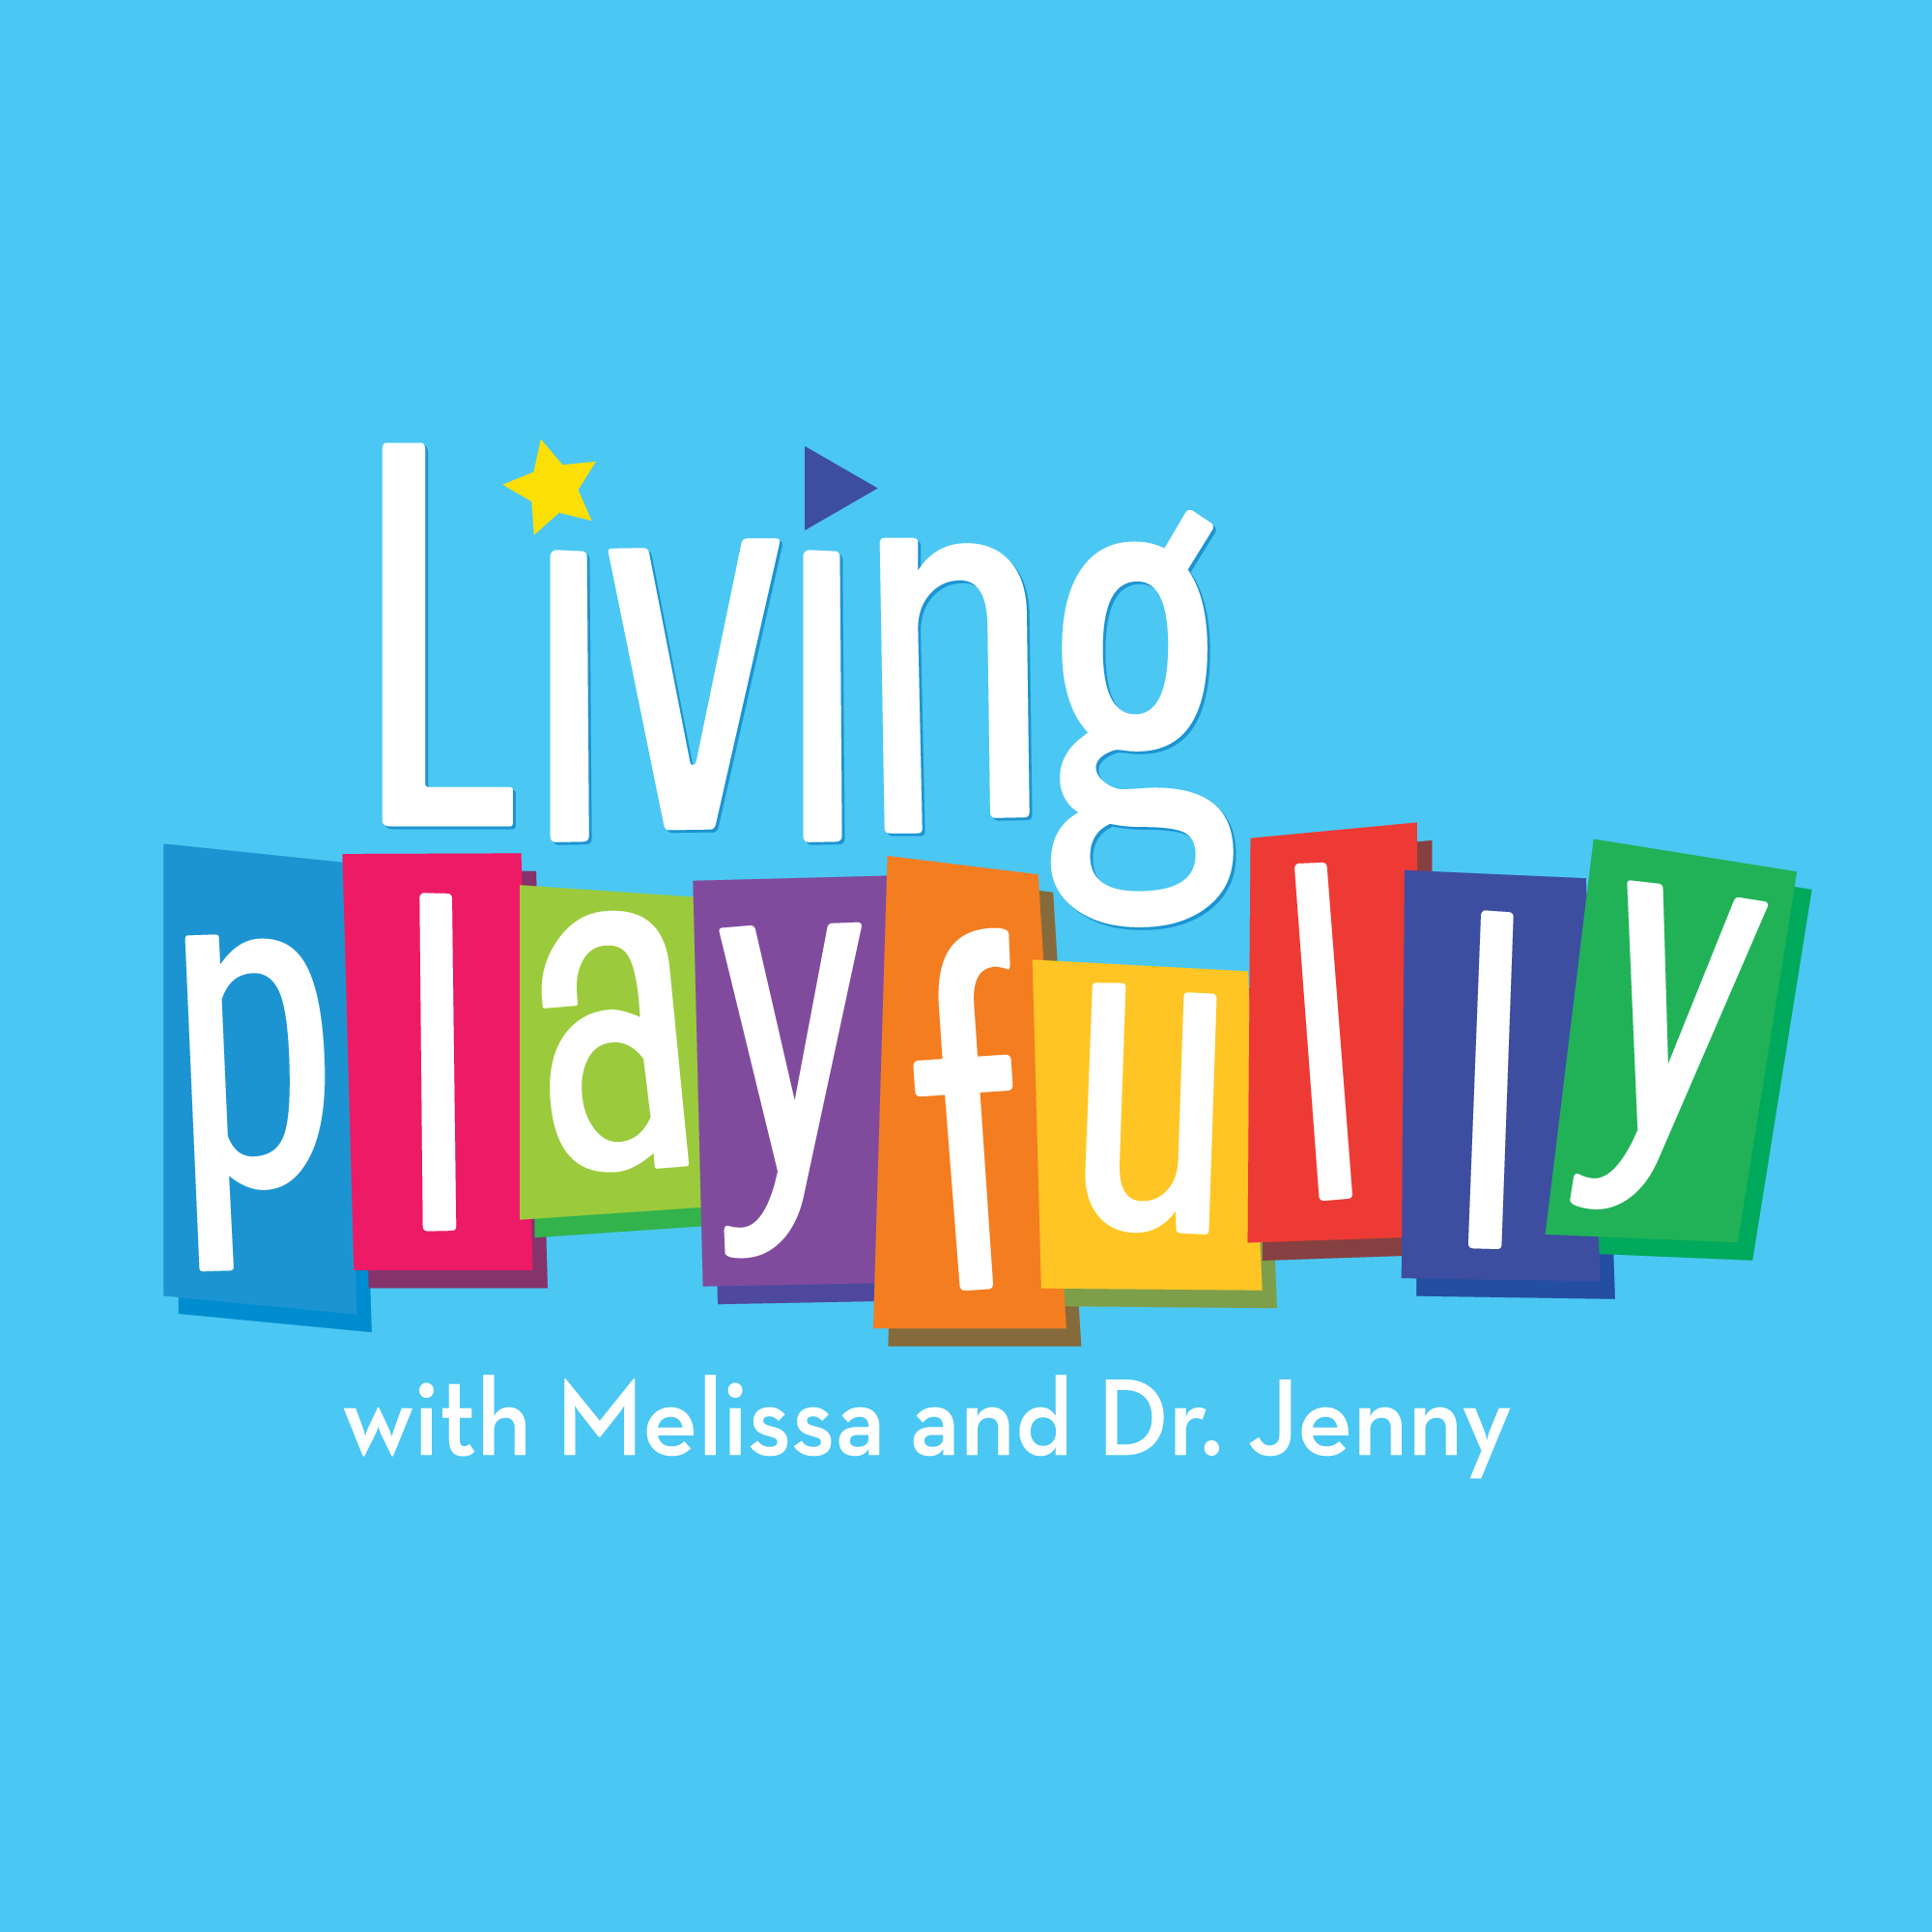 Why We're Launching a New Podcast on Parenting, Play, and the Digital Age